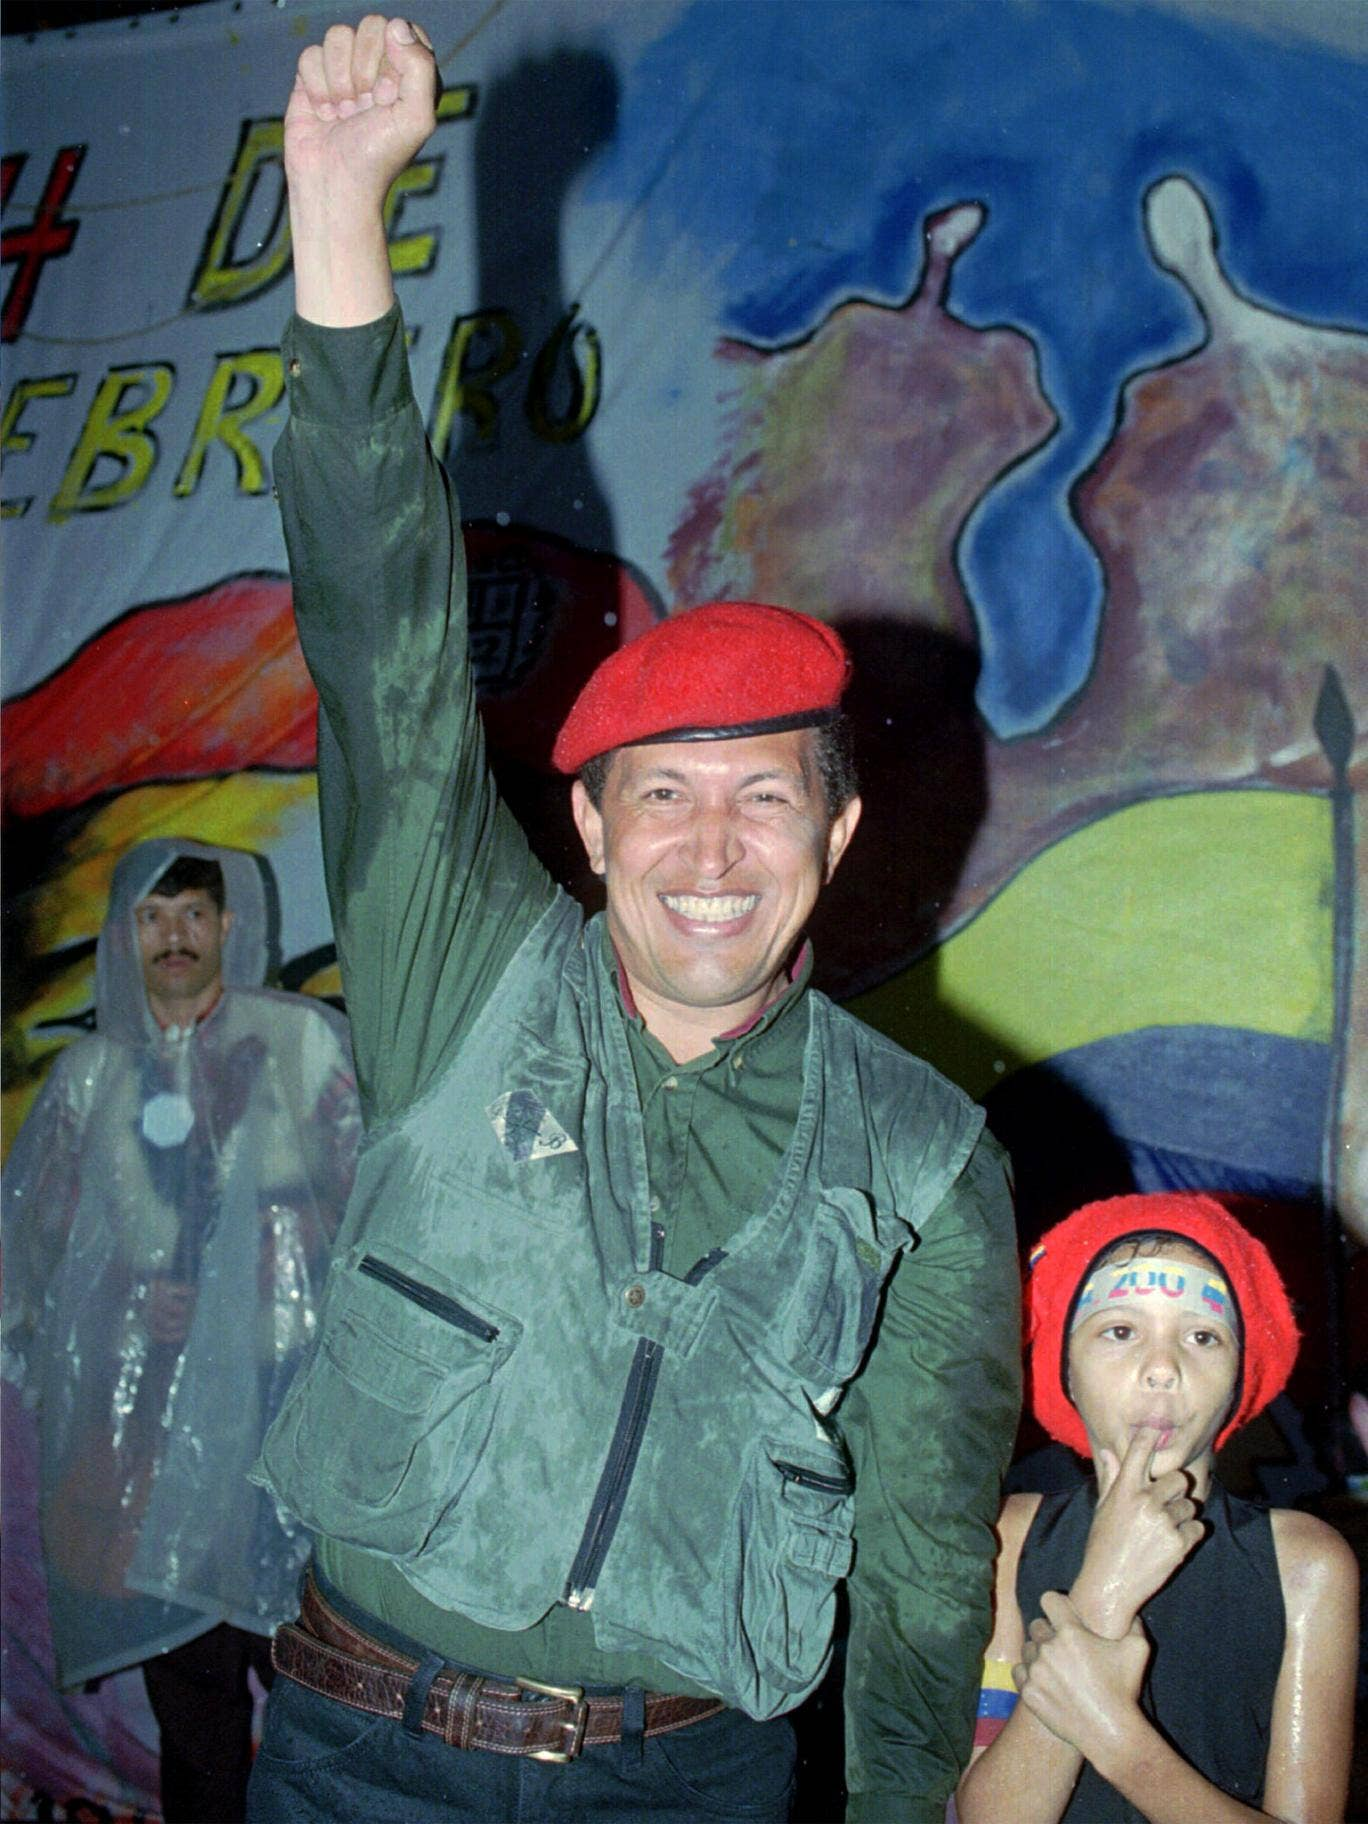 Chavez in 1997, marking the anniversary of his failed coup attempt in 1992